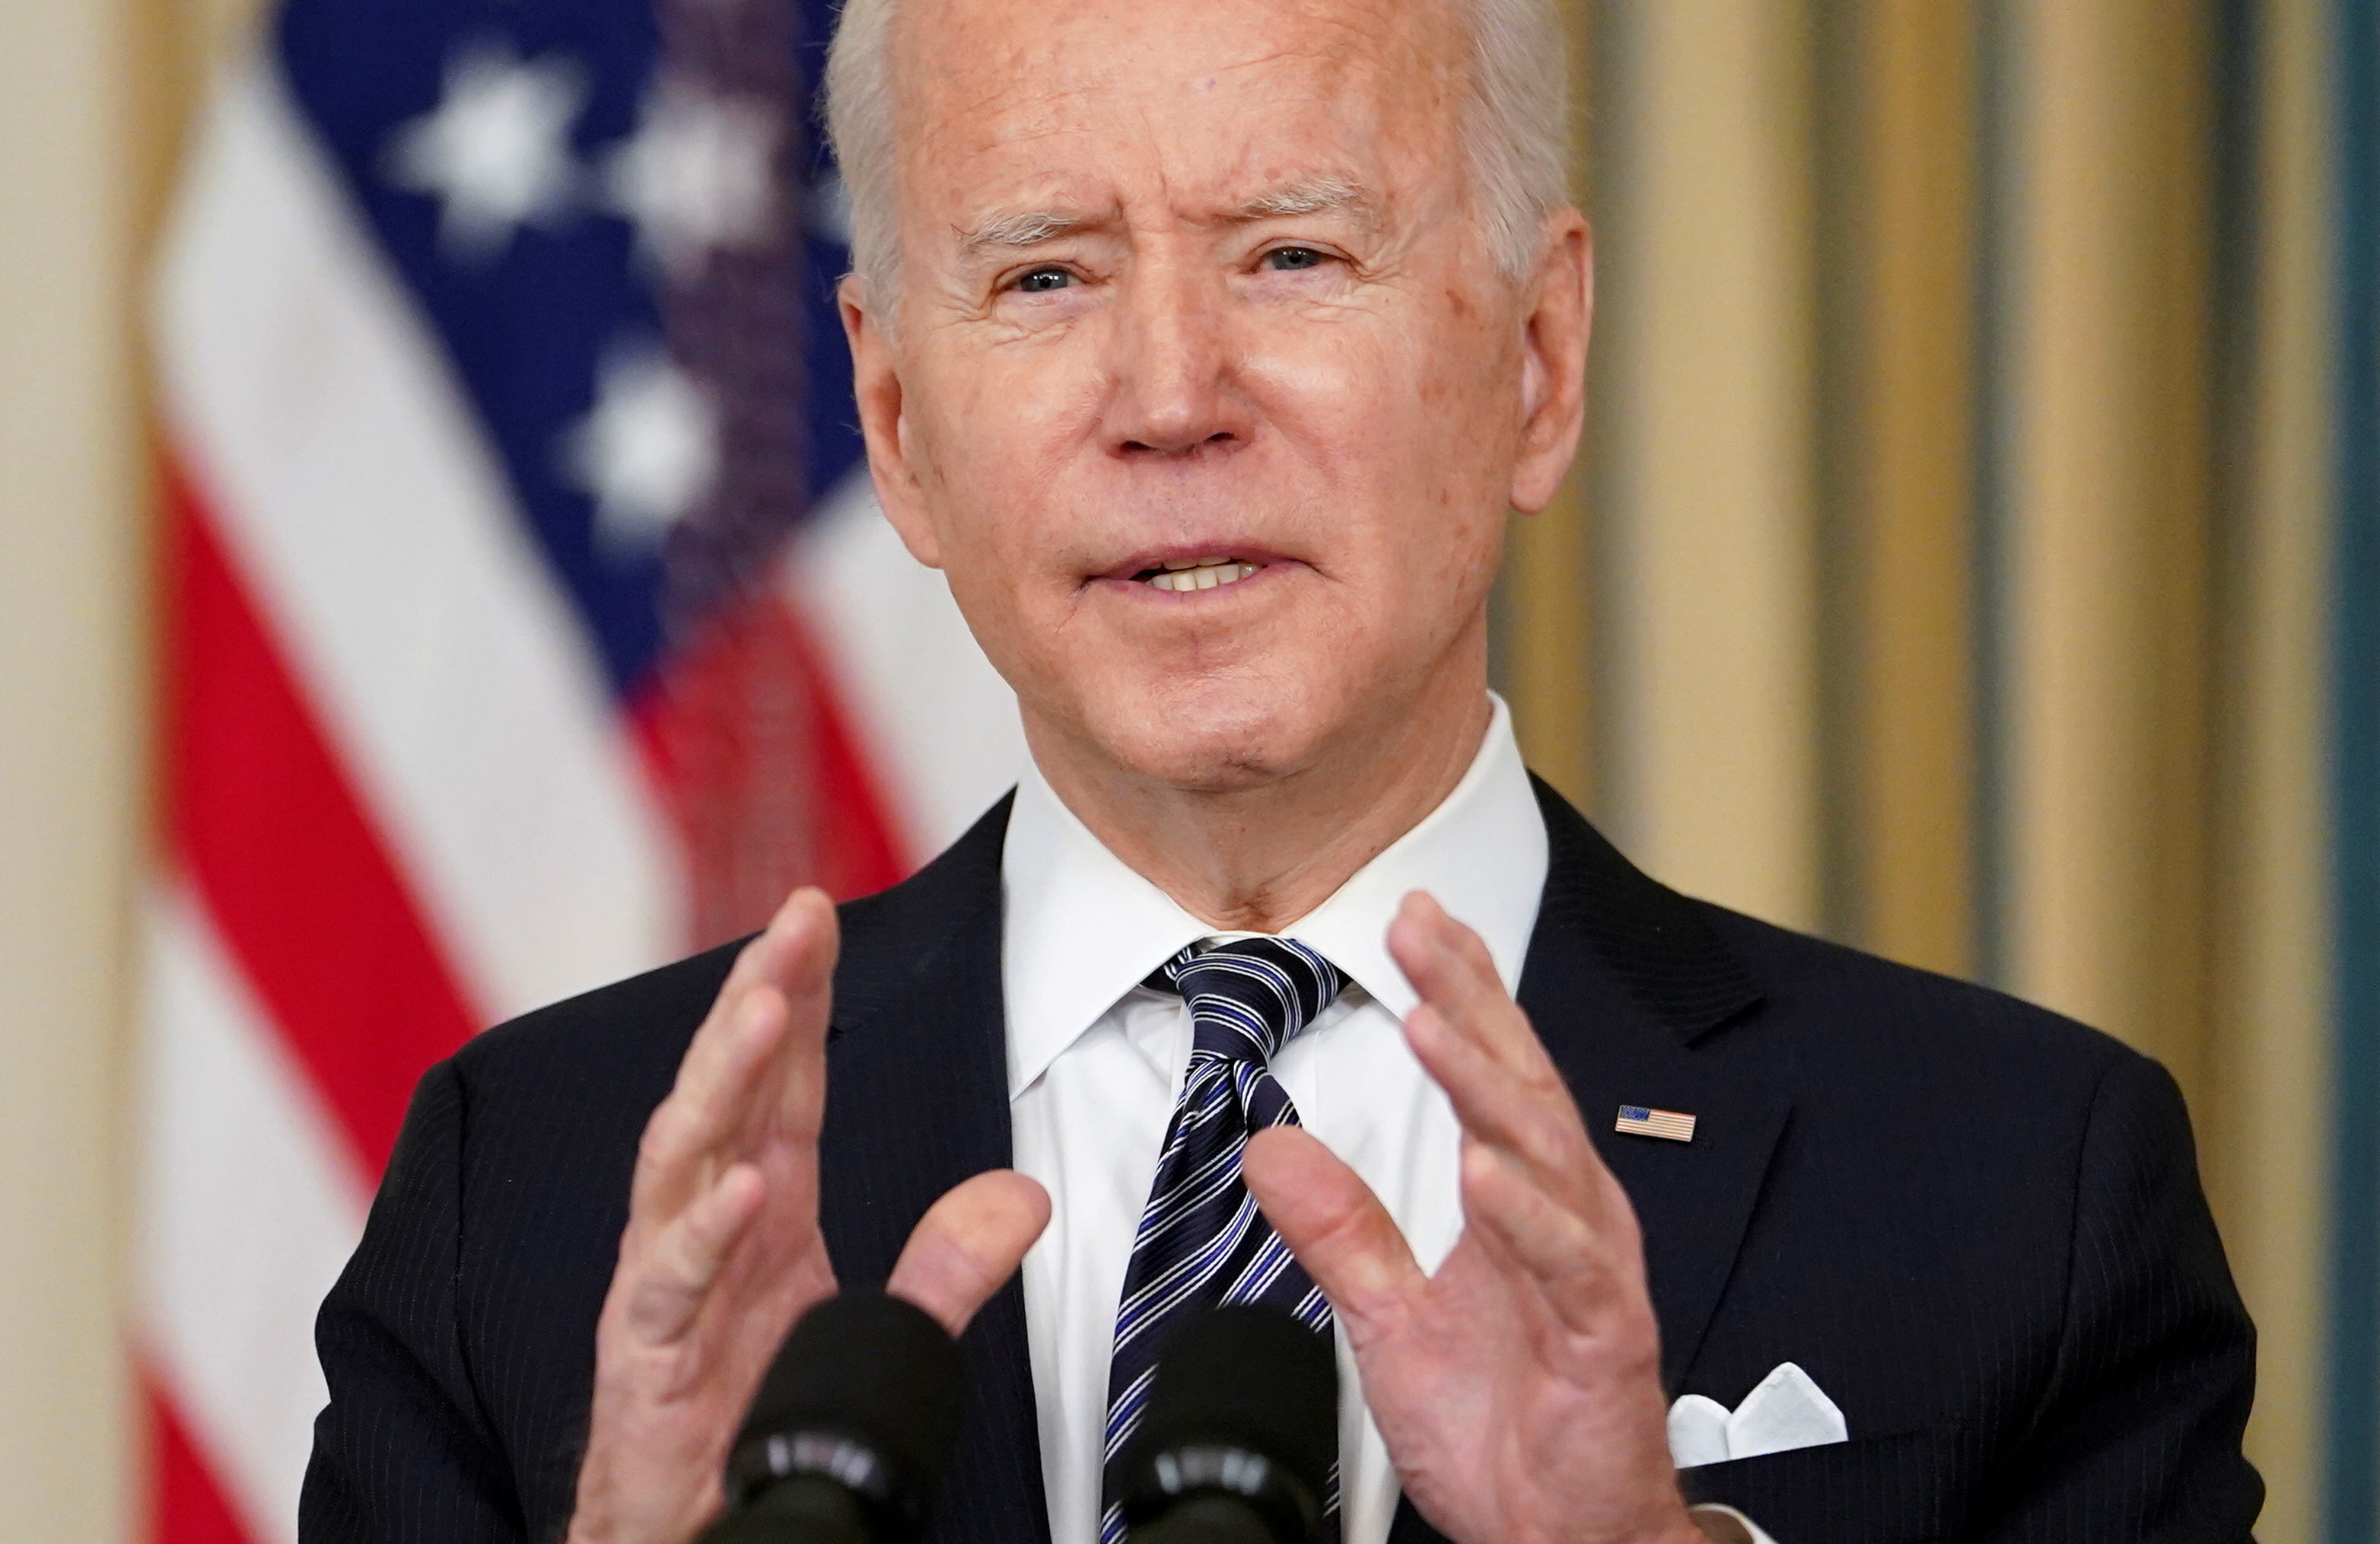 U.S. President Joe Biden speaks about the implementation of the American Rescue Plan in the State Dining Room at the White House in Washington, U.S., March 15, 2021. REUTERS/Kevin Lamarque/